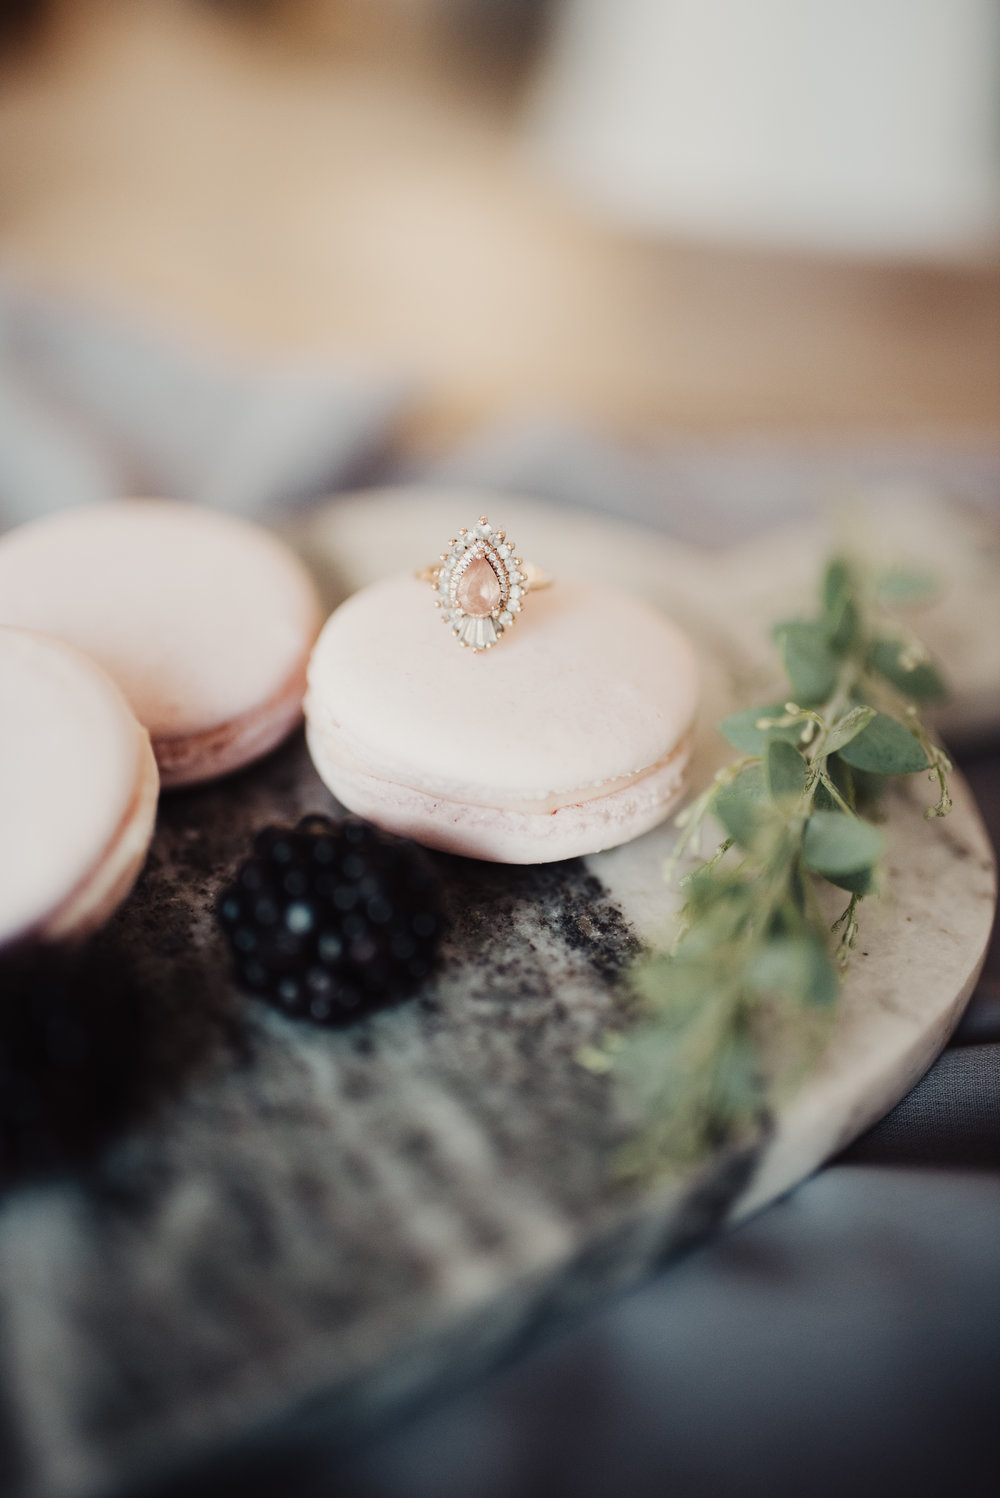 heidi-gibson-wedding-ring-macaroon.jpg